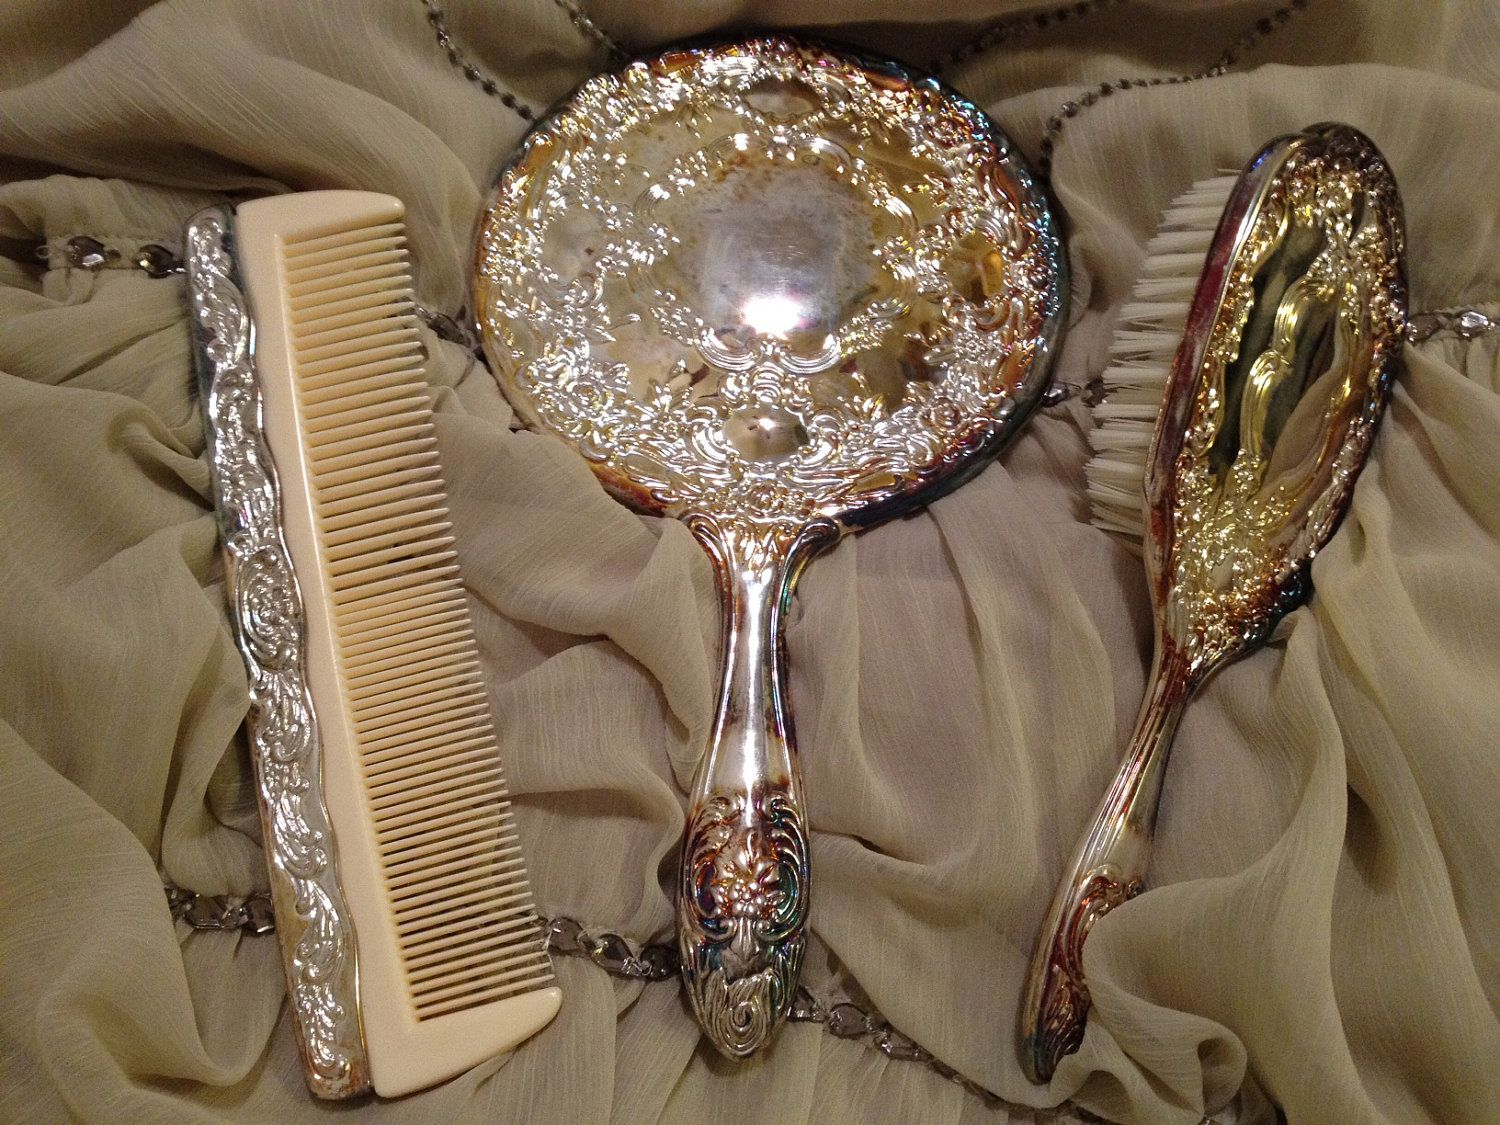 Needful Things Gorgeous Vintage Antique Silver-Plated 3-Piece Vanity Set. & Needful Things: Gorgeous Vintage Antique Silver-Plated 3-Piece ...